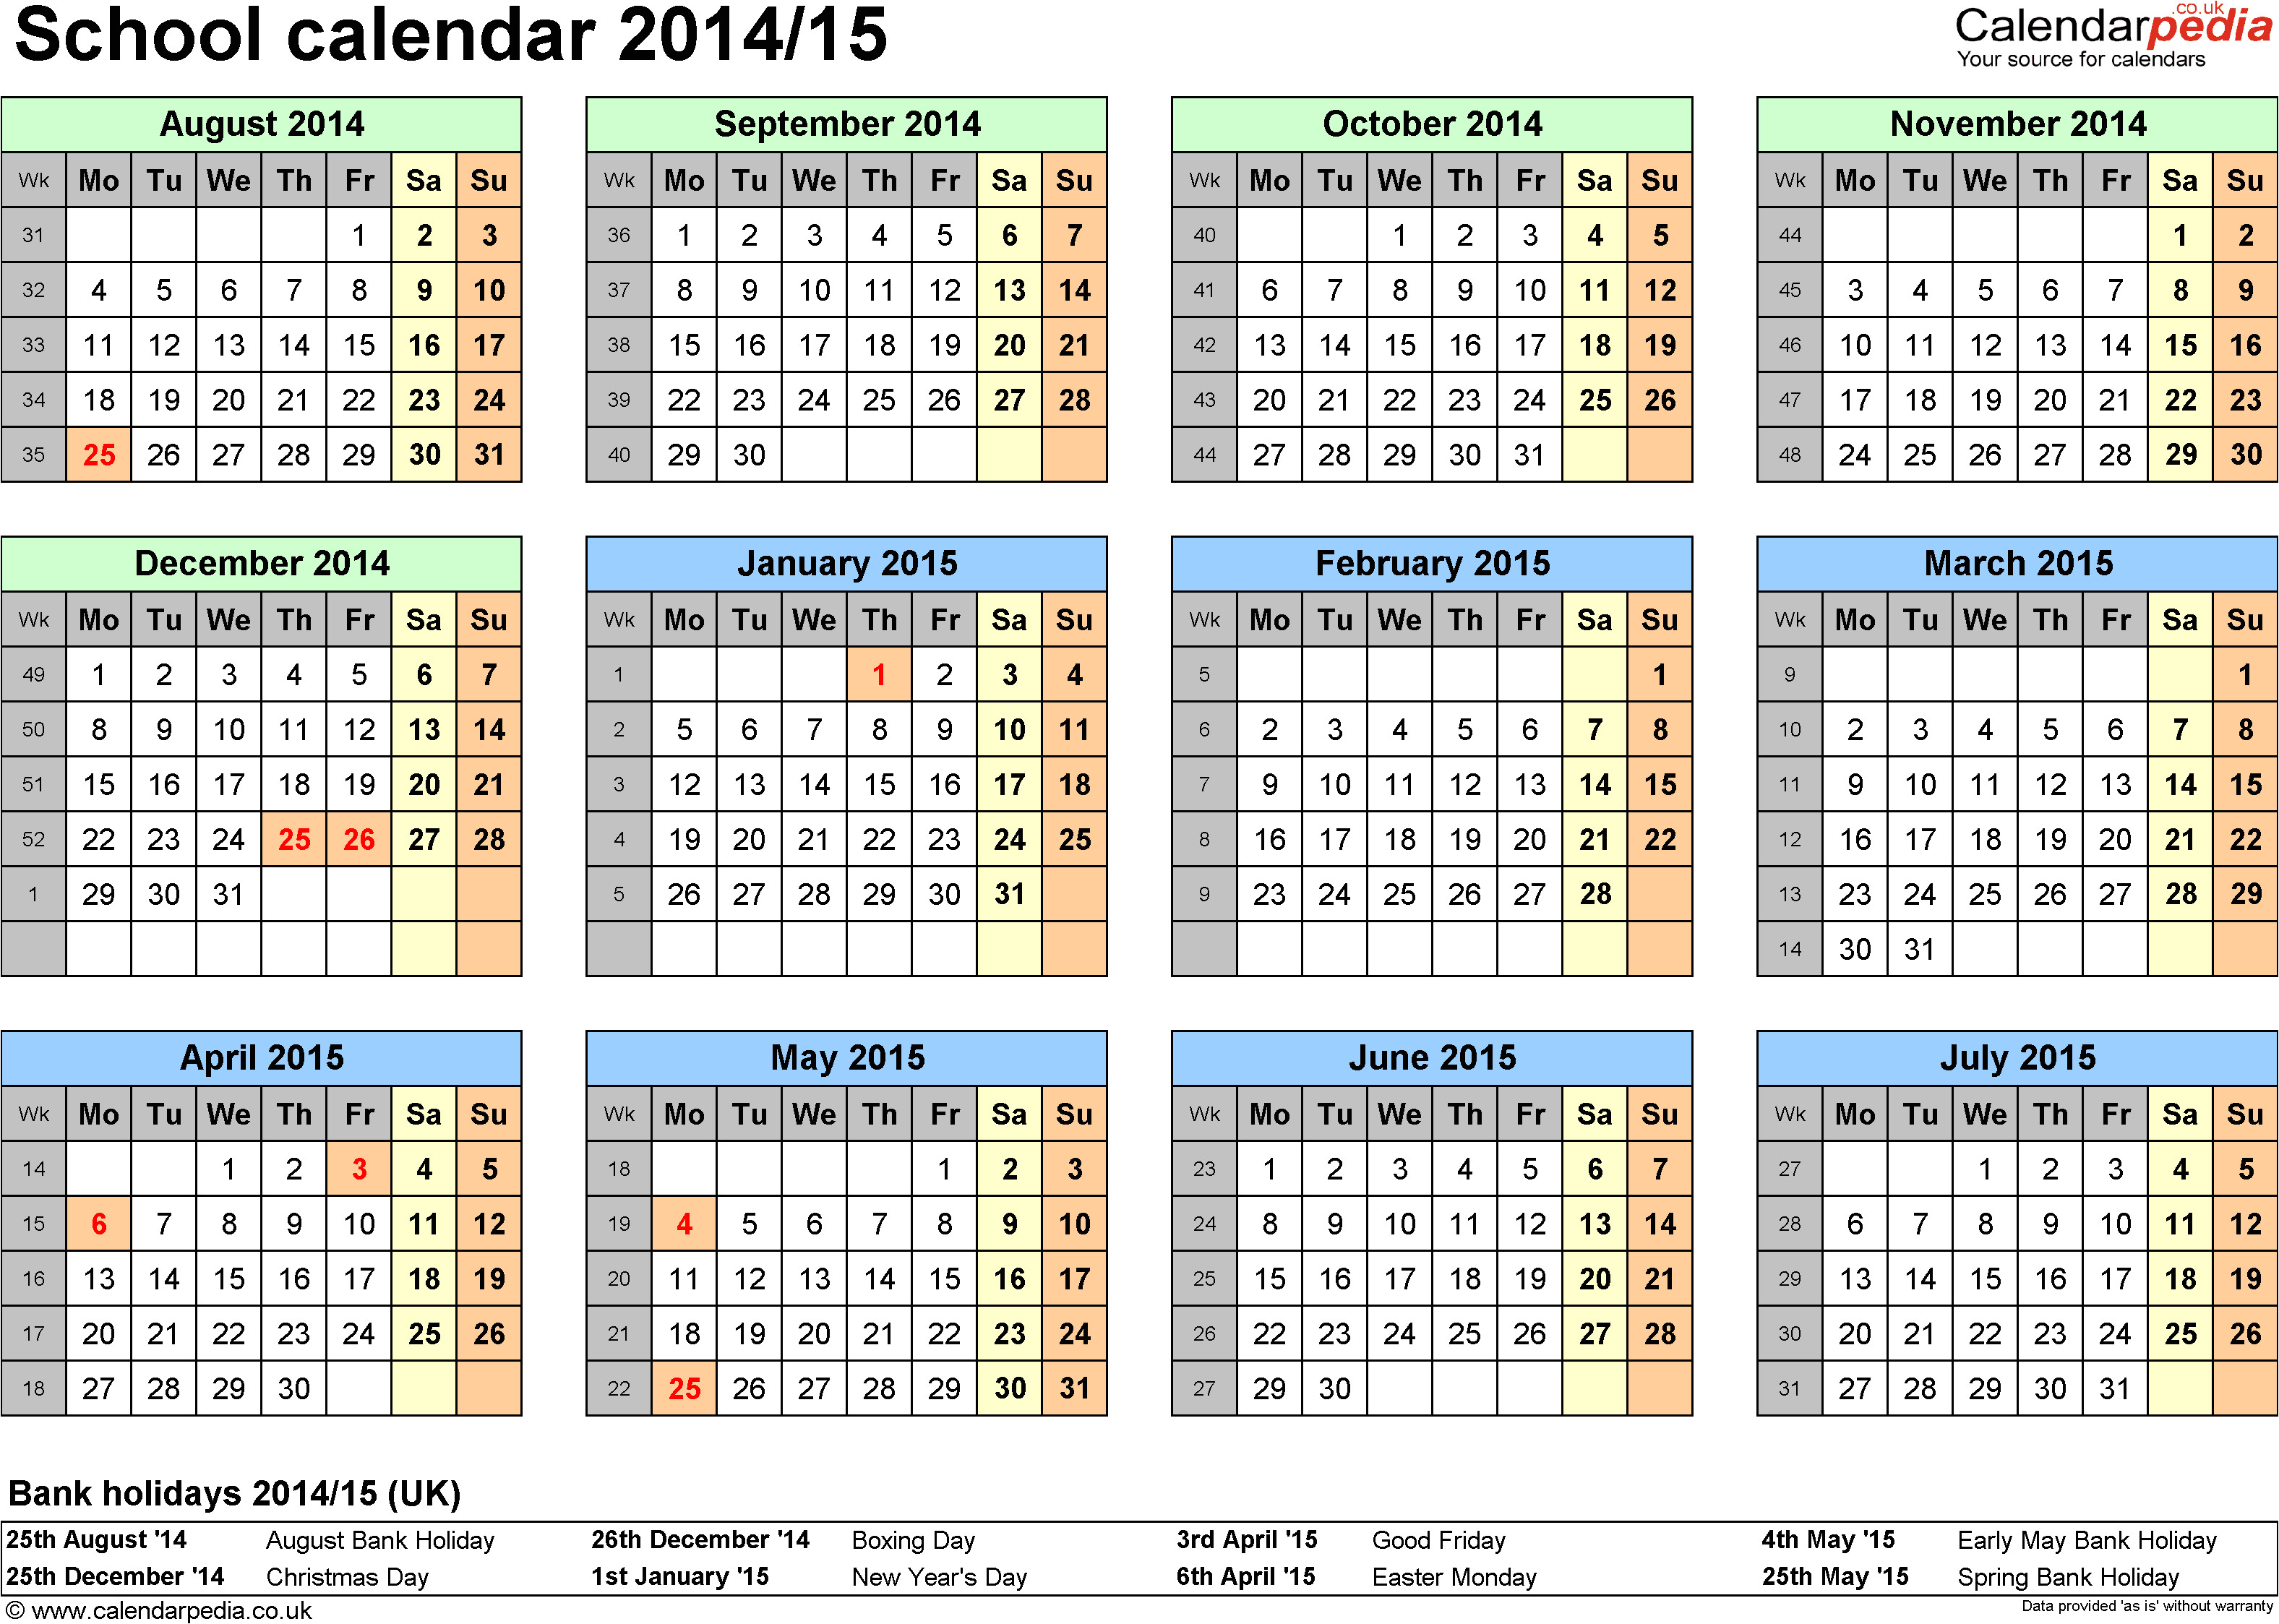 Academic Calendar Template 2014-15 6 Best Images Of Printable School Calendar 2014 2015